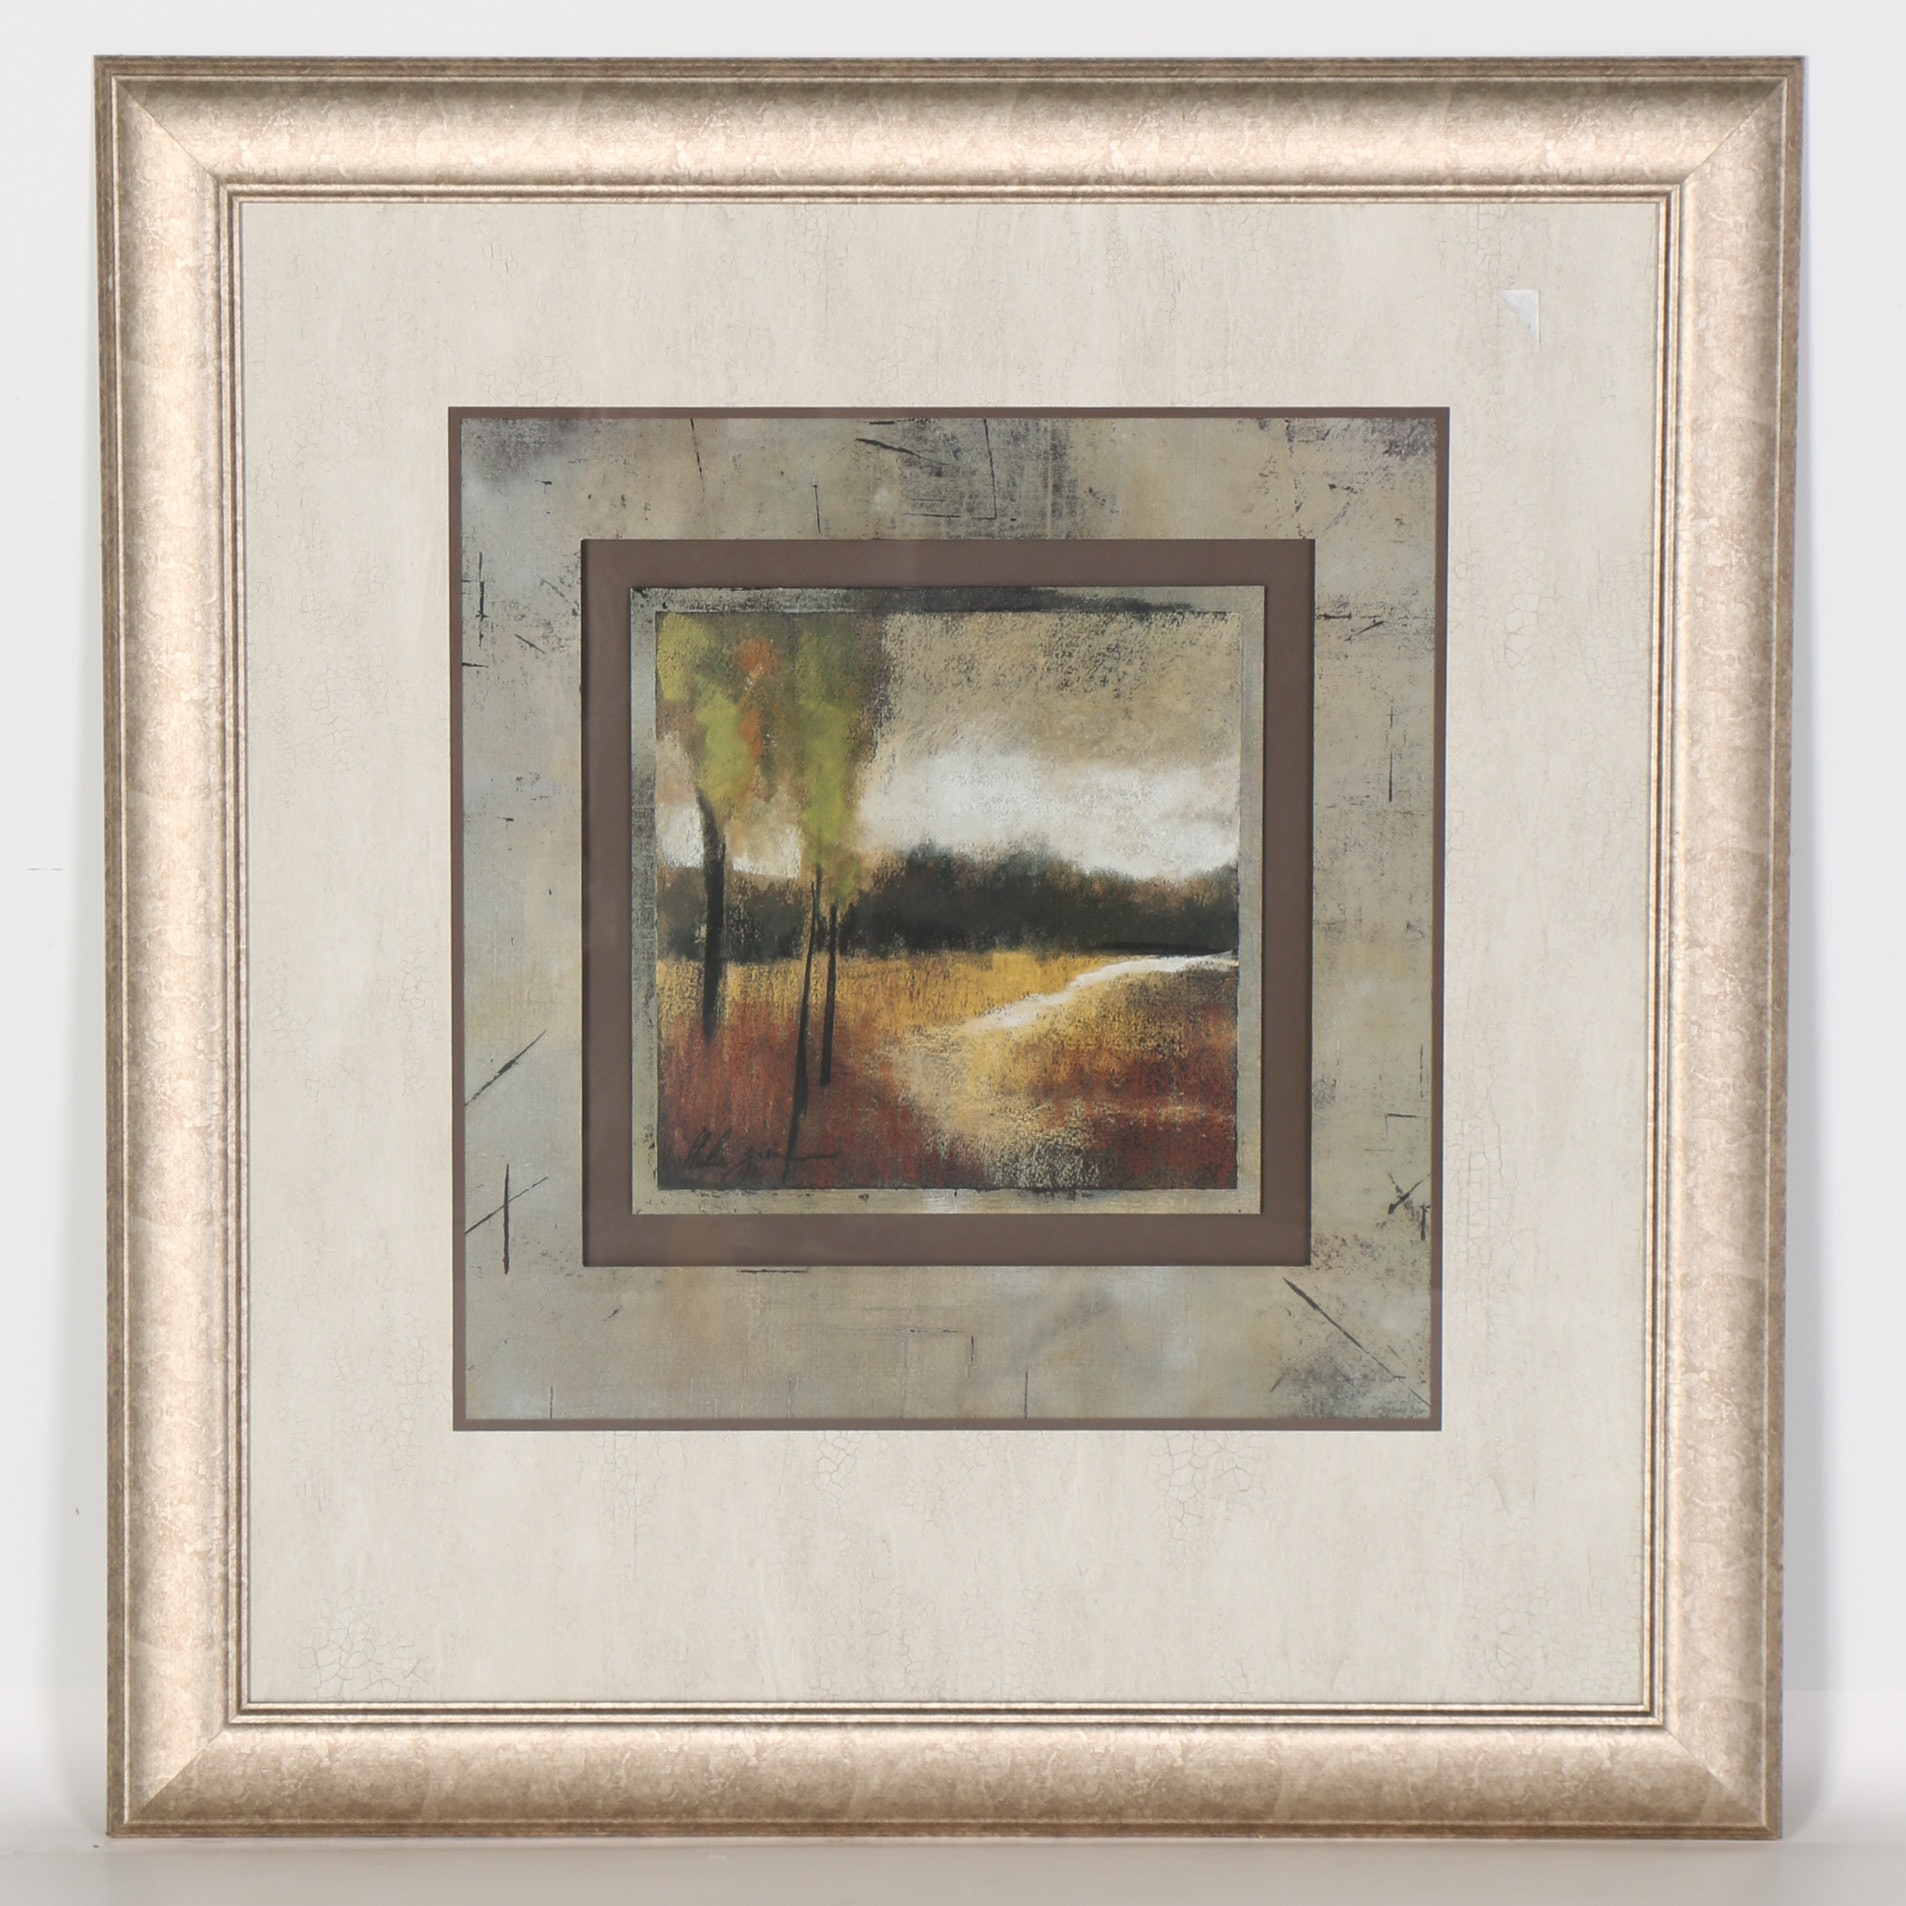 Framed Lithograph of Landscape under Stormy Skies